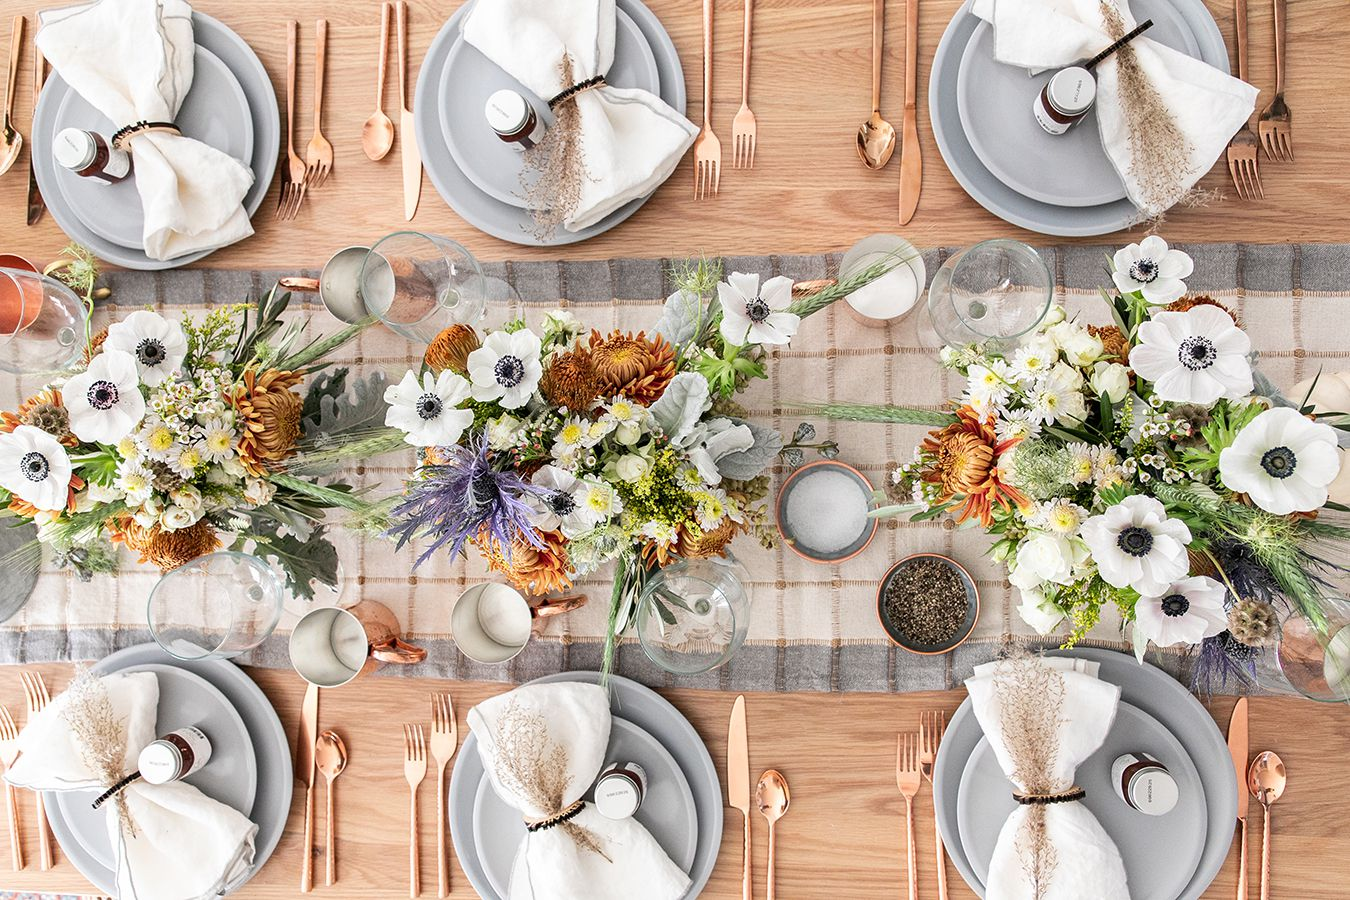 15 Thanksgiving Décor Ideas That Are Surprisingly Chic